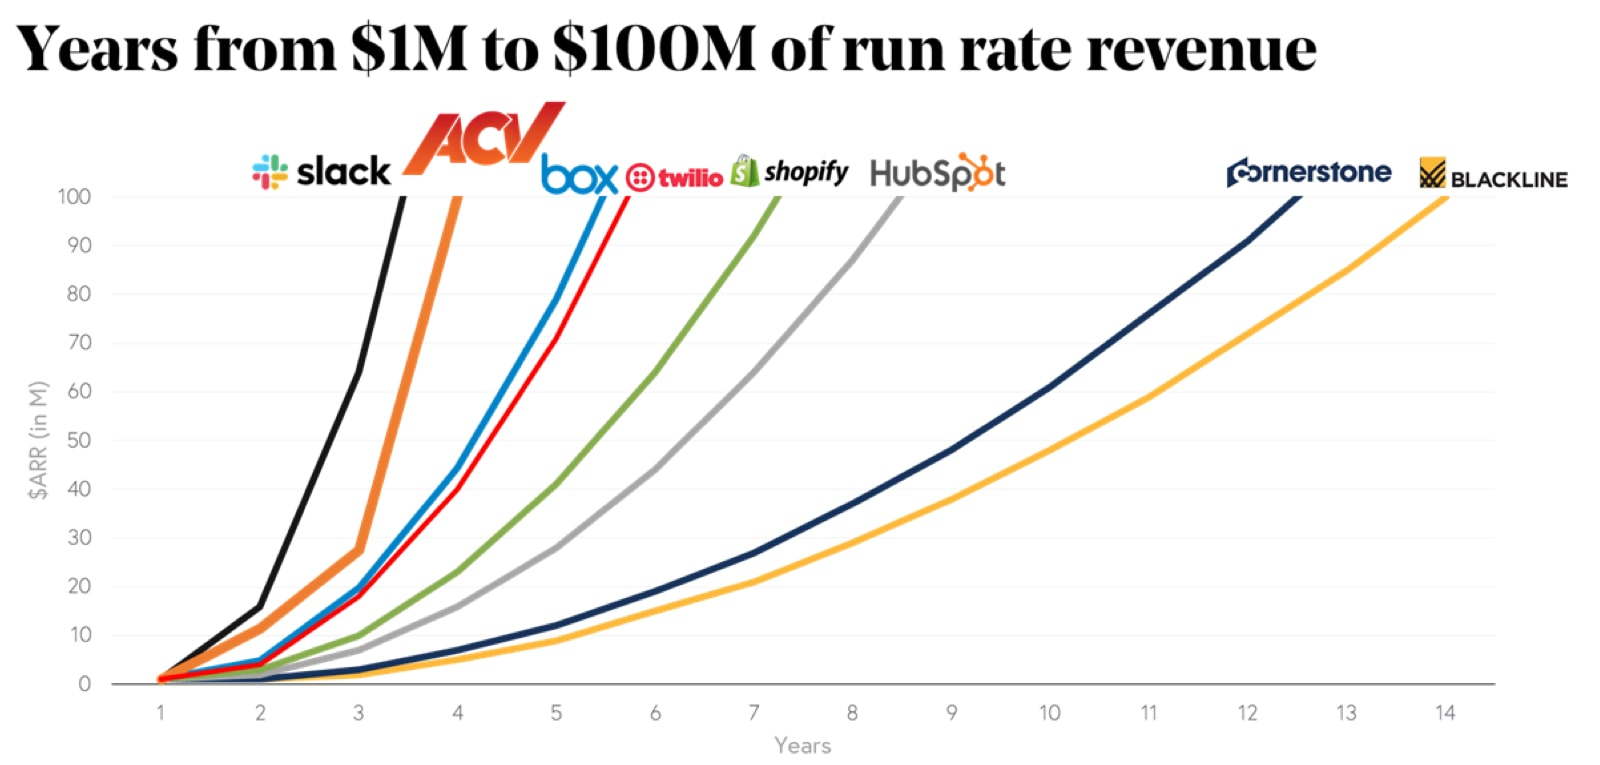 Chart of Years from $1M to $100M of run rate revenue